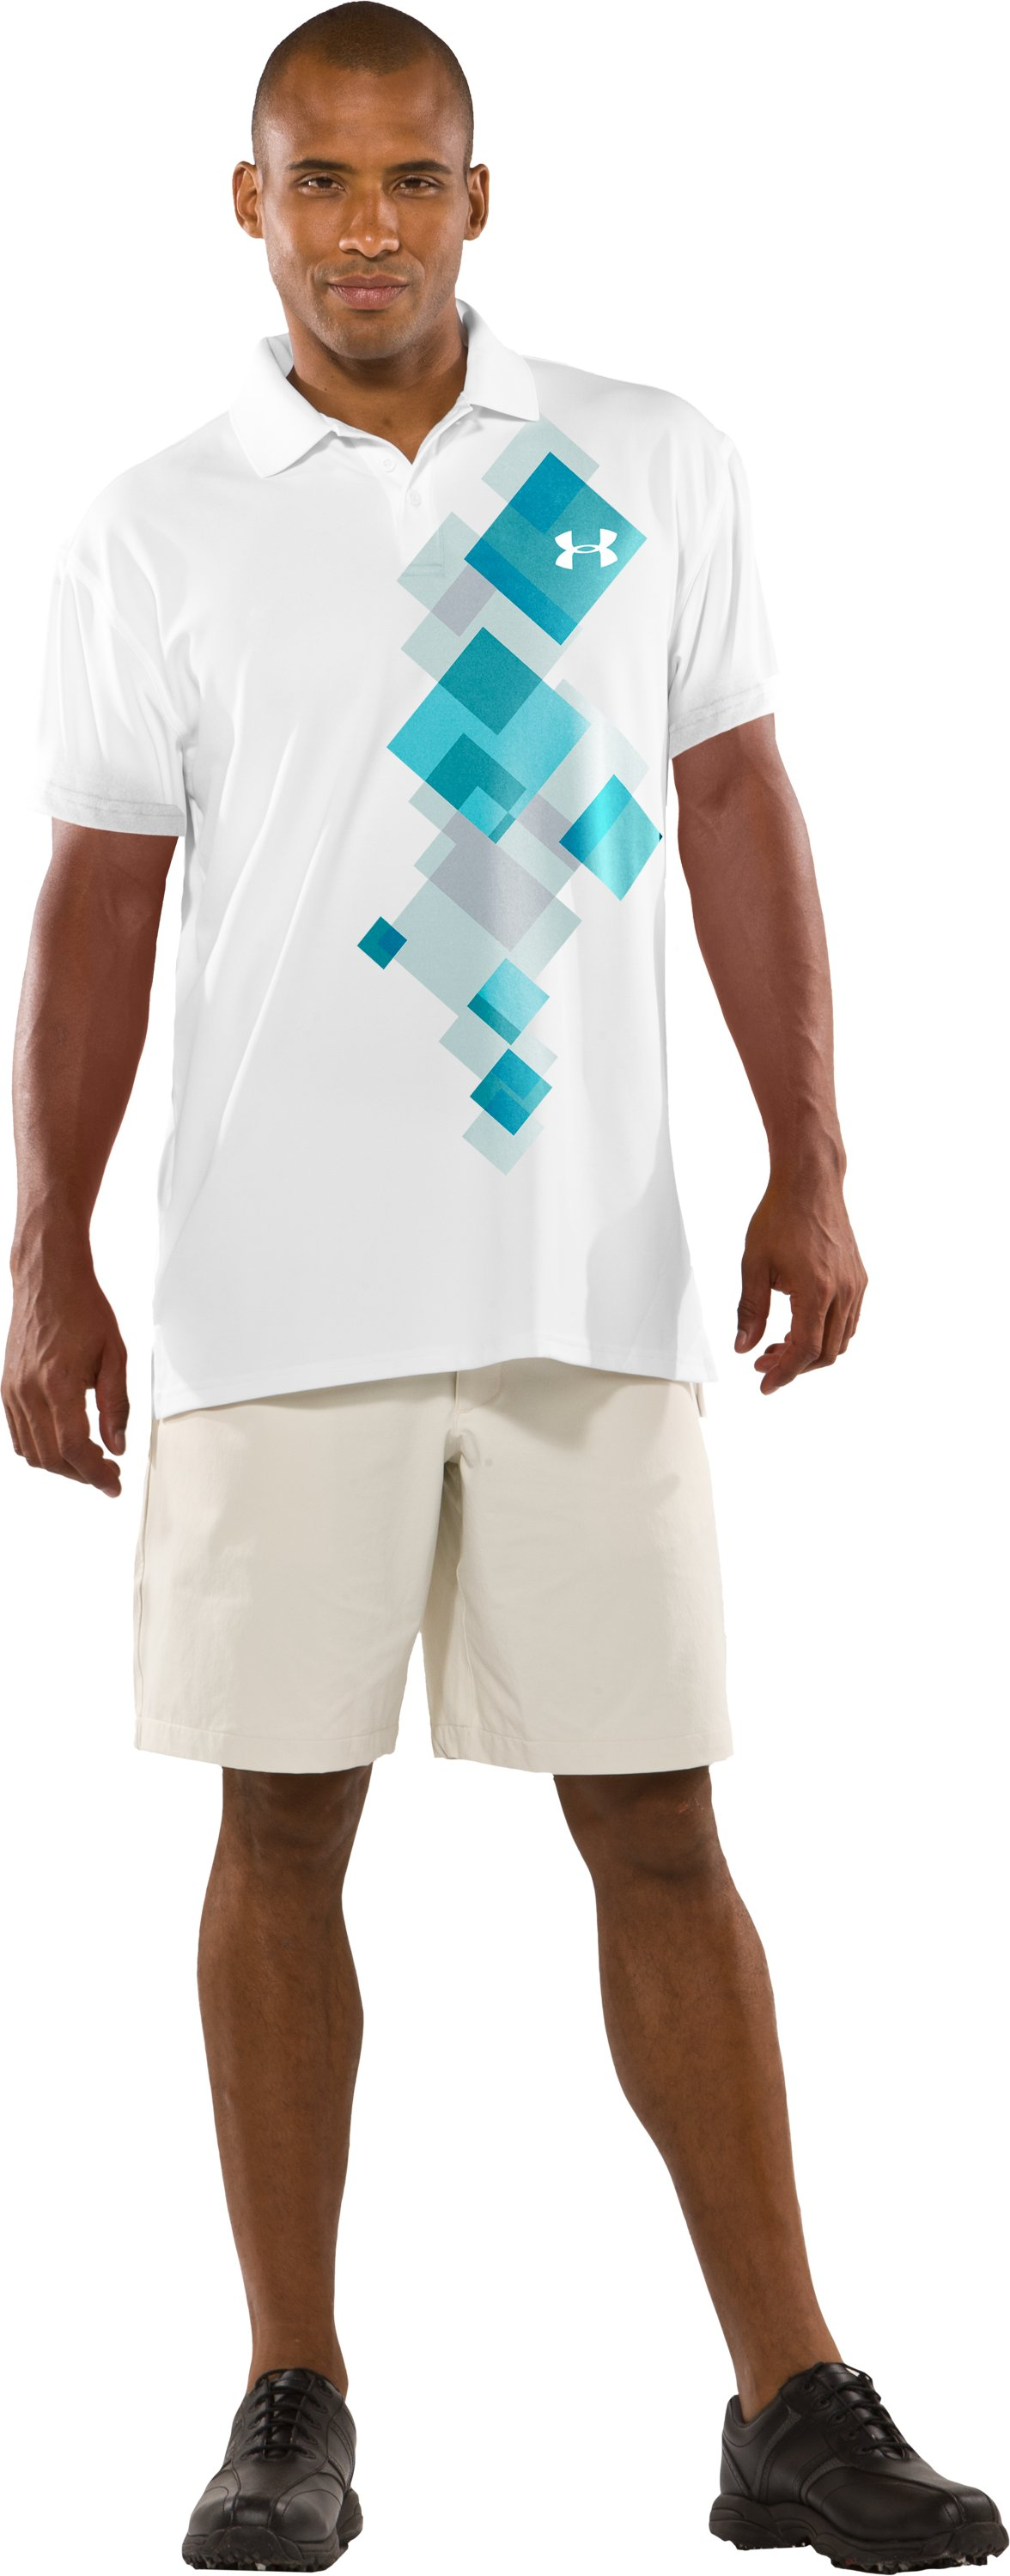 Men's Performance Graphic Polo, White